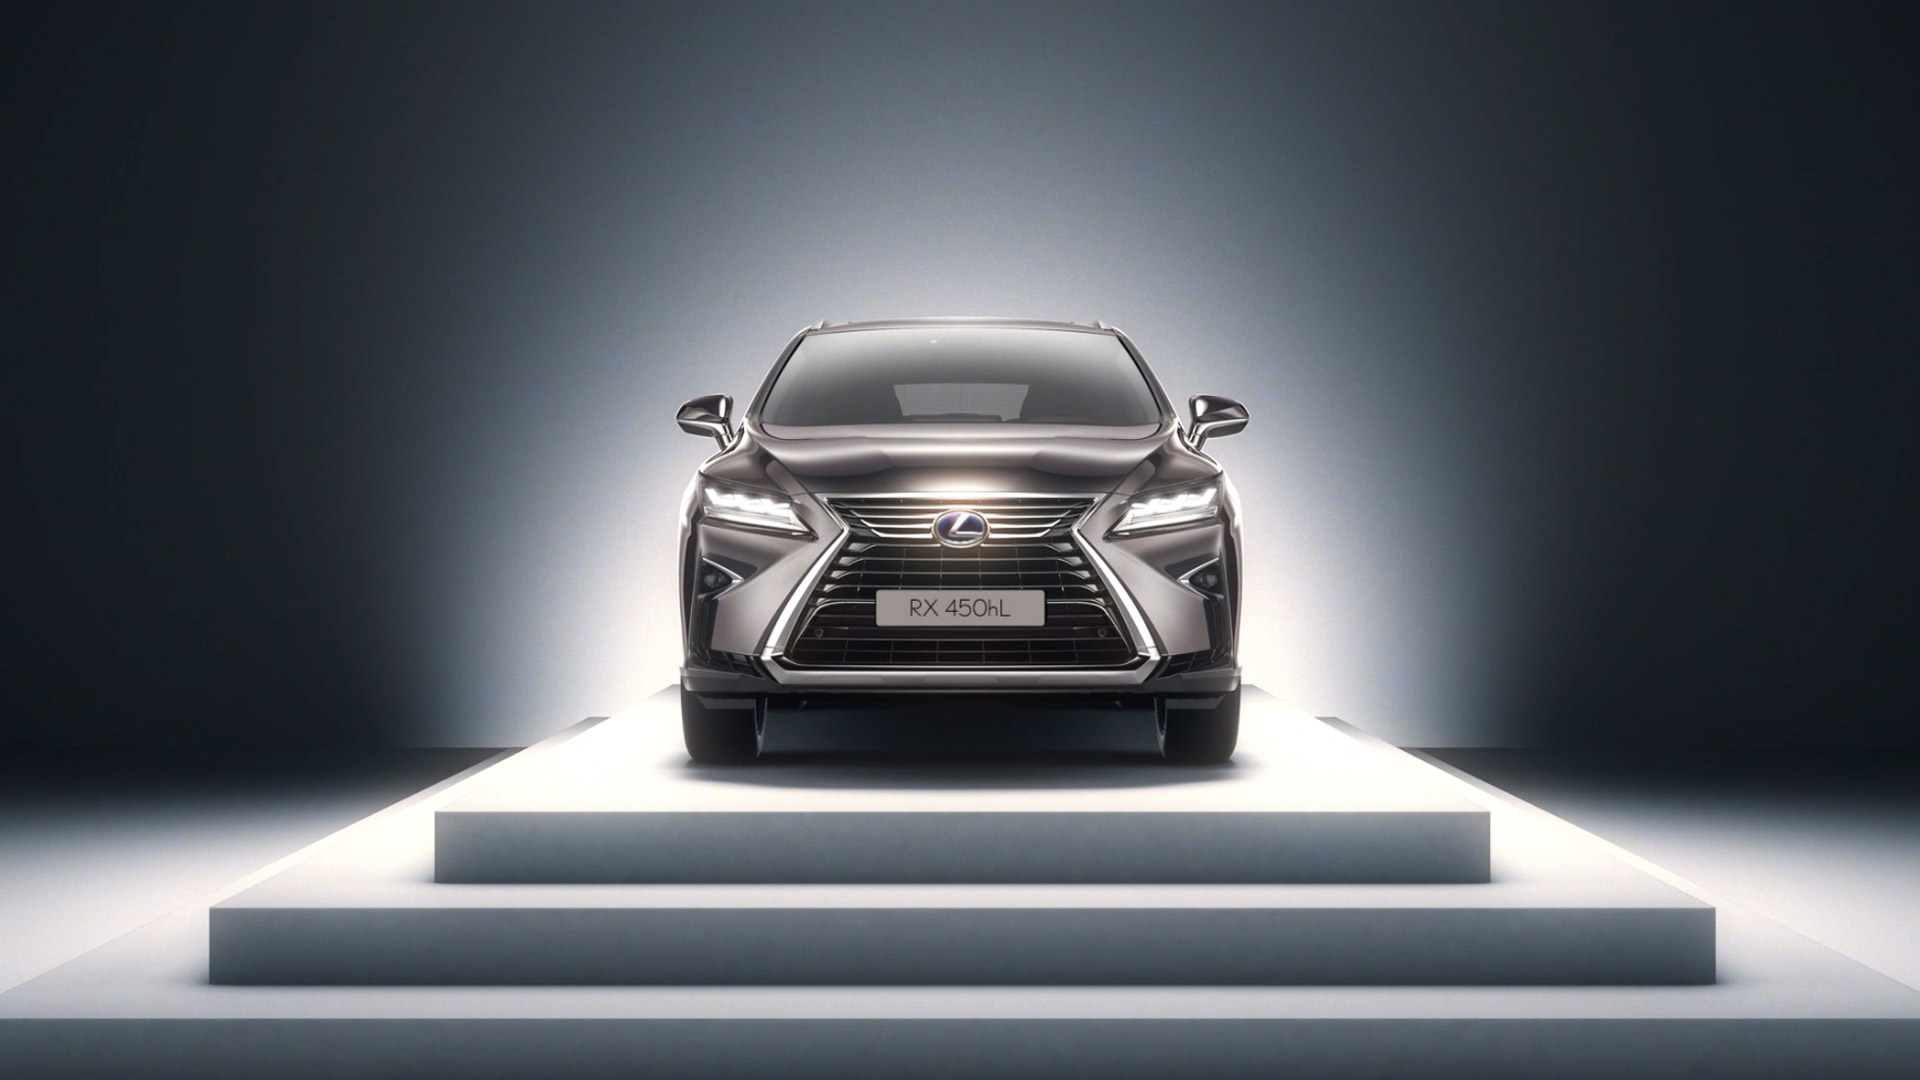 2018 lexus rx l gallery video 450hl fly through